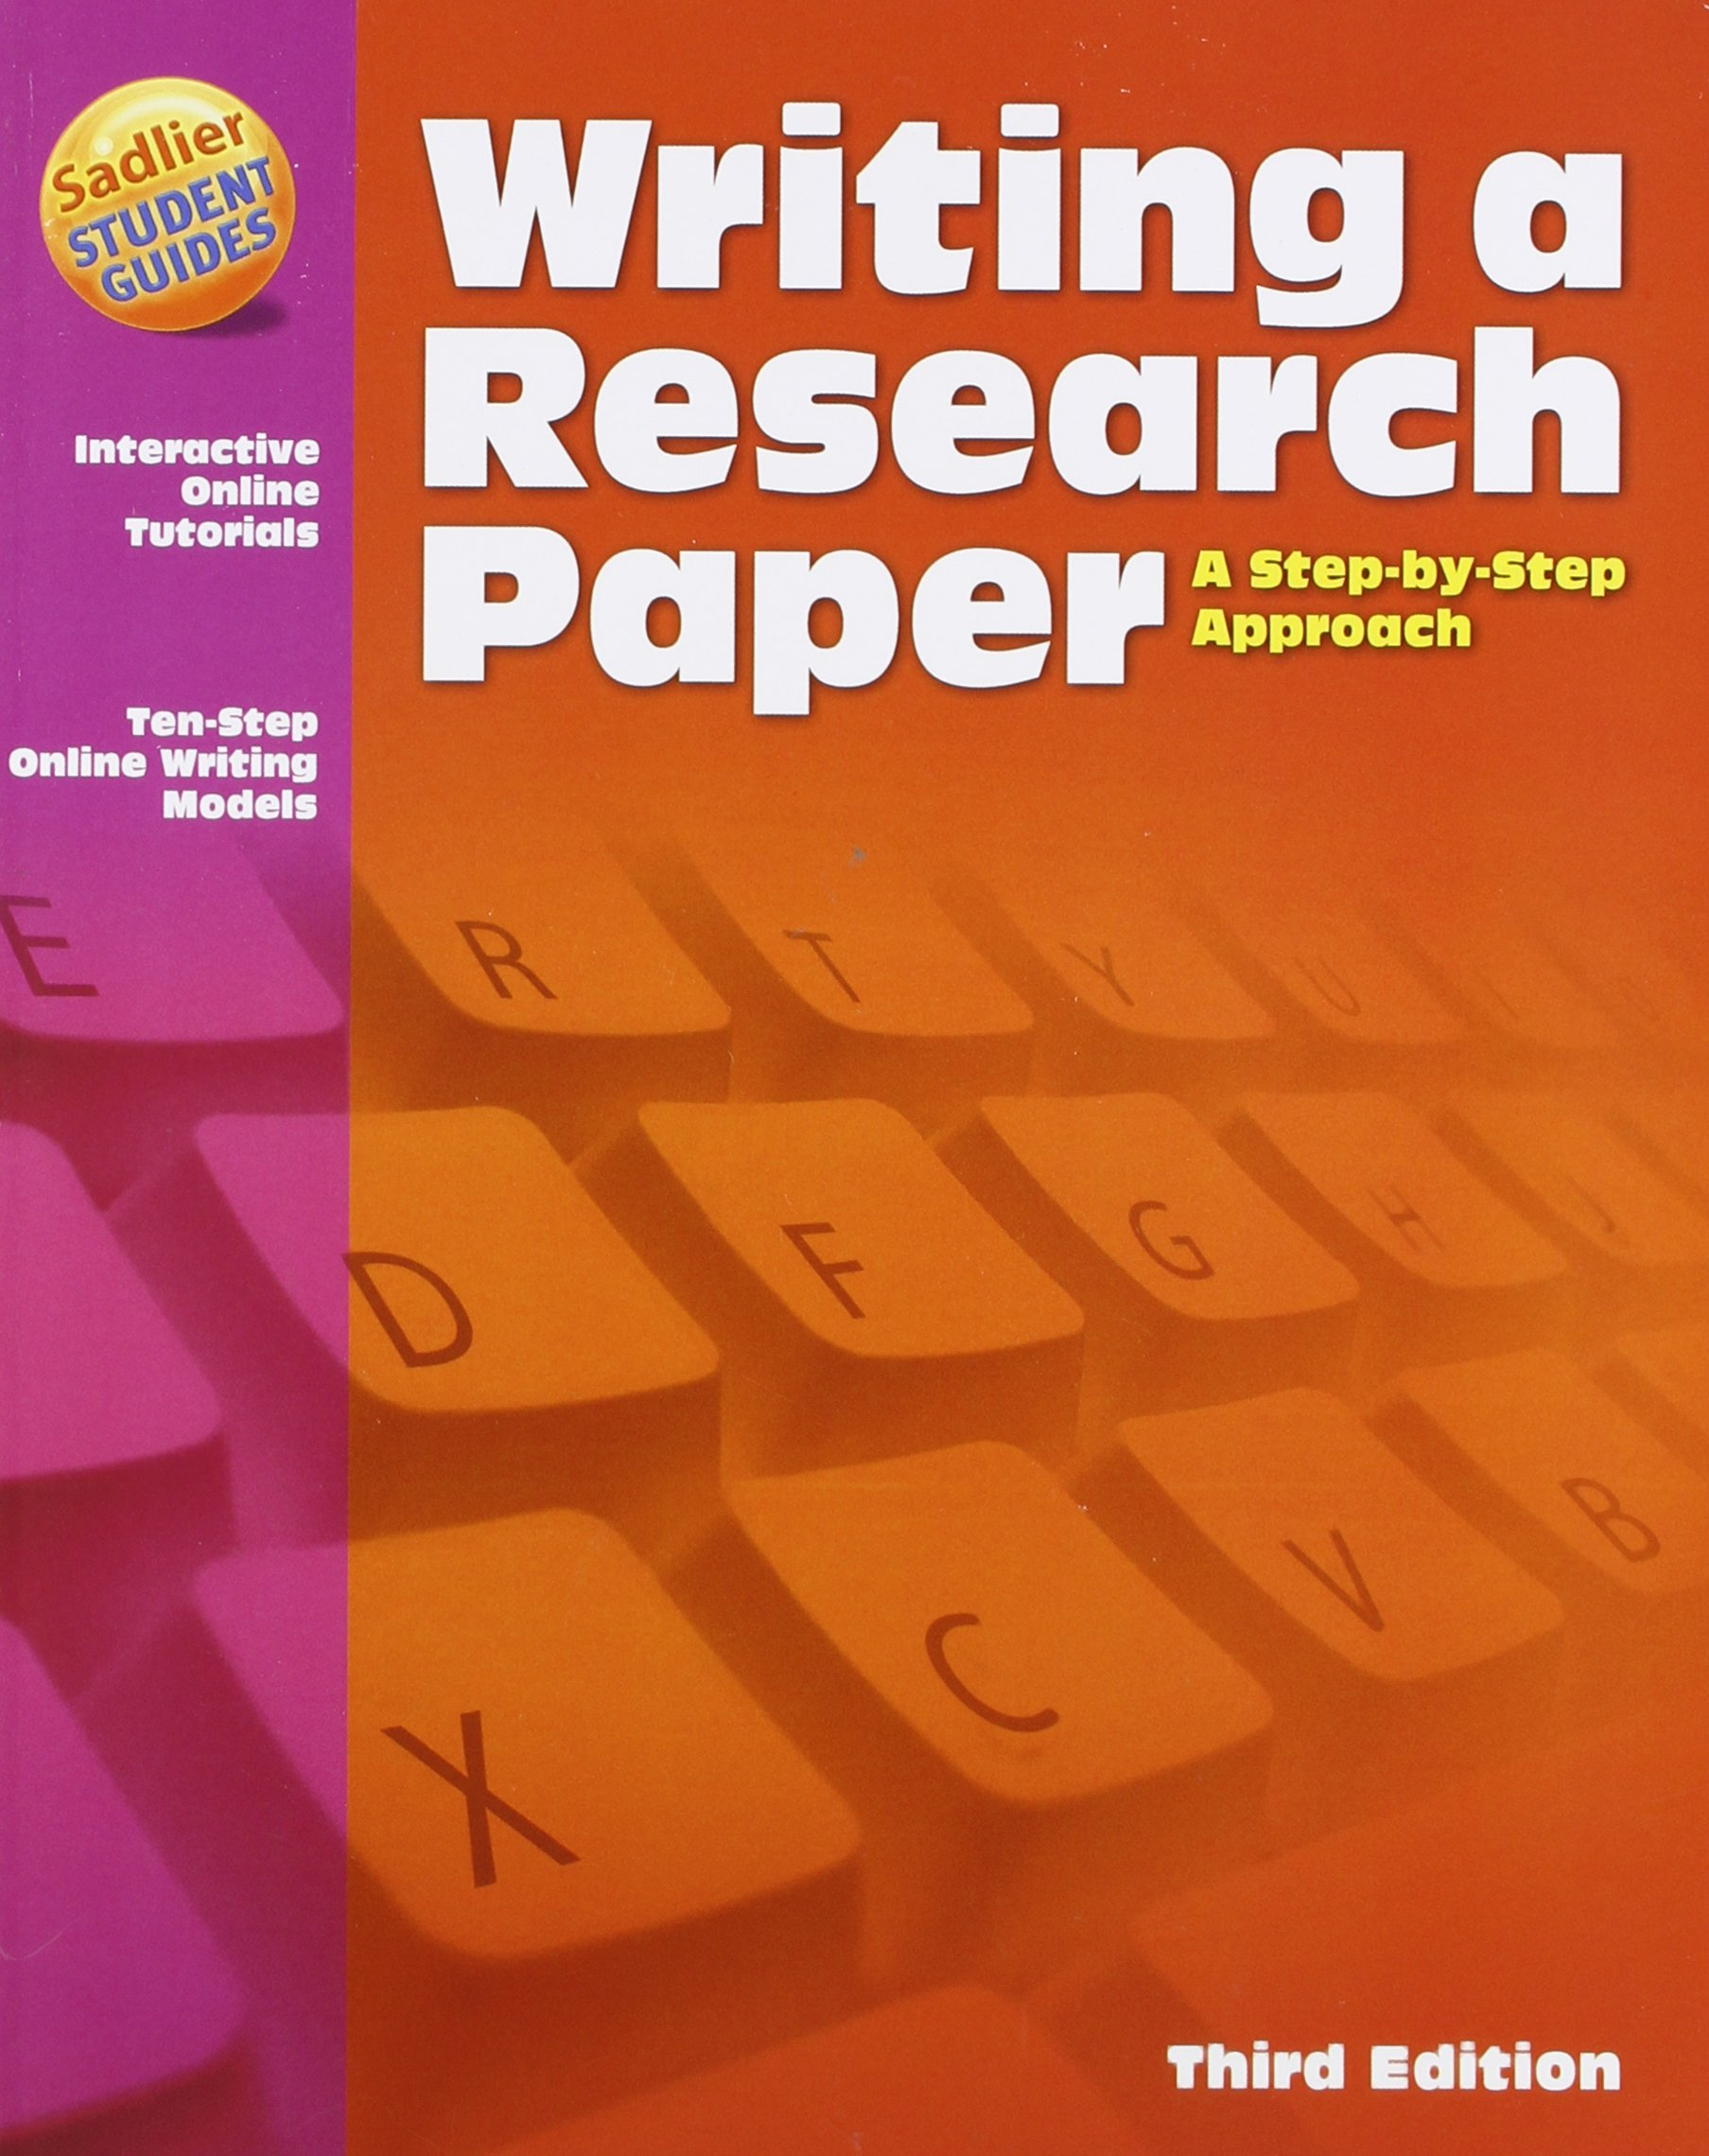 011 81uqfpthpml Help With Writing Researchs Fantastic Research Papers Assistance A Paper Full